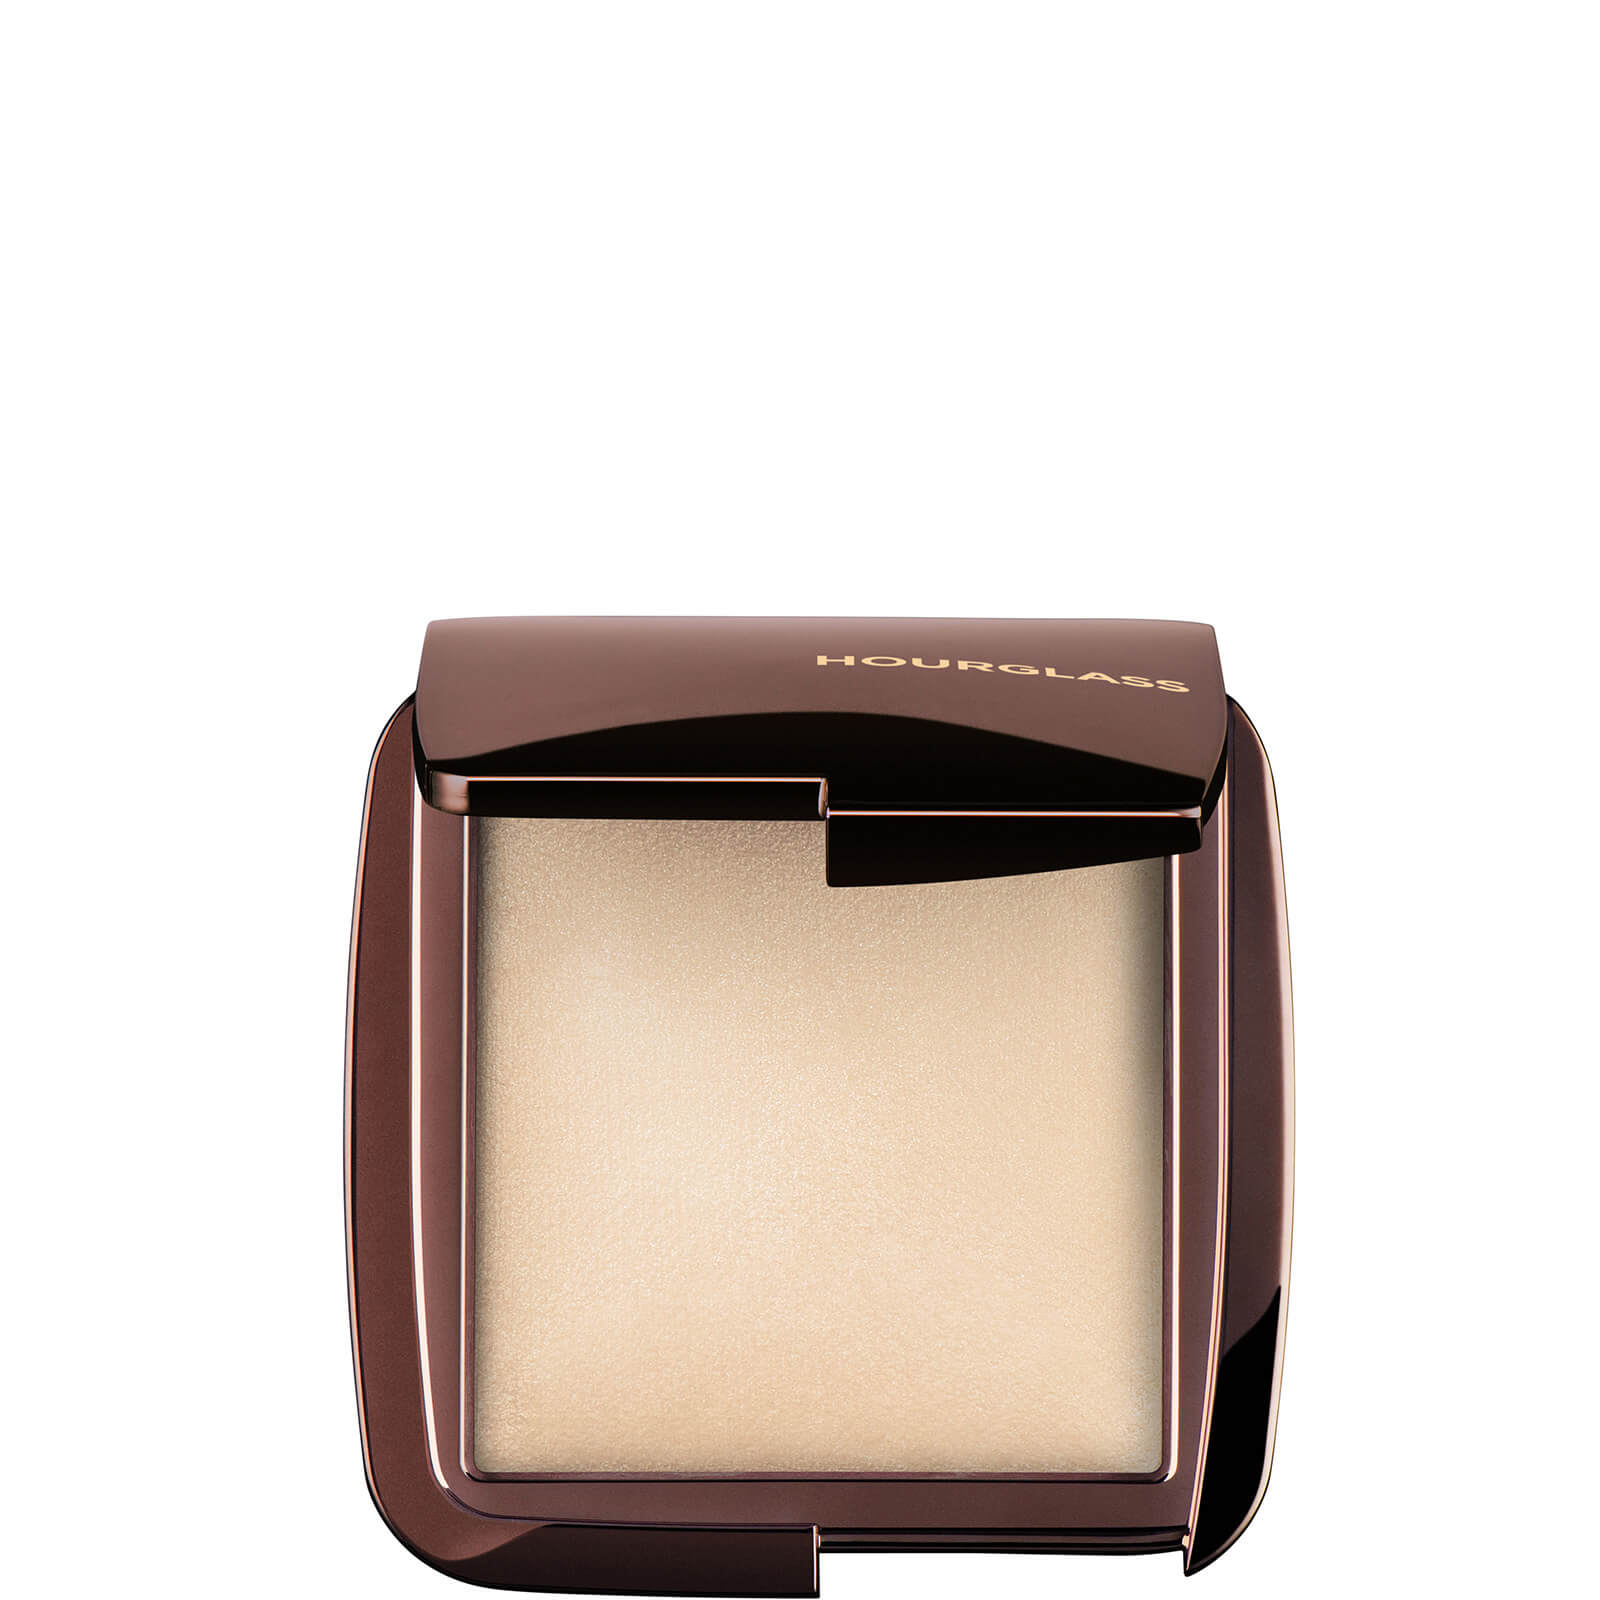 Hourglass Ambient Lighting Powder 10g (Various Shades) - Diffused Light